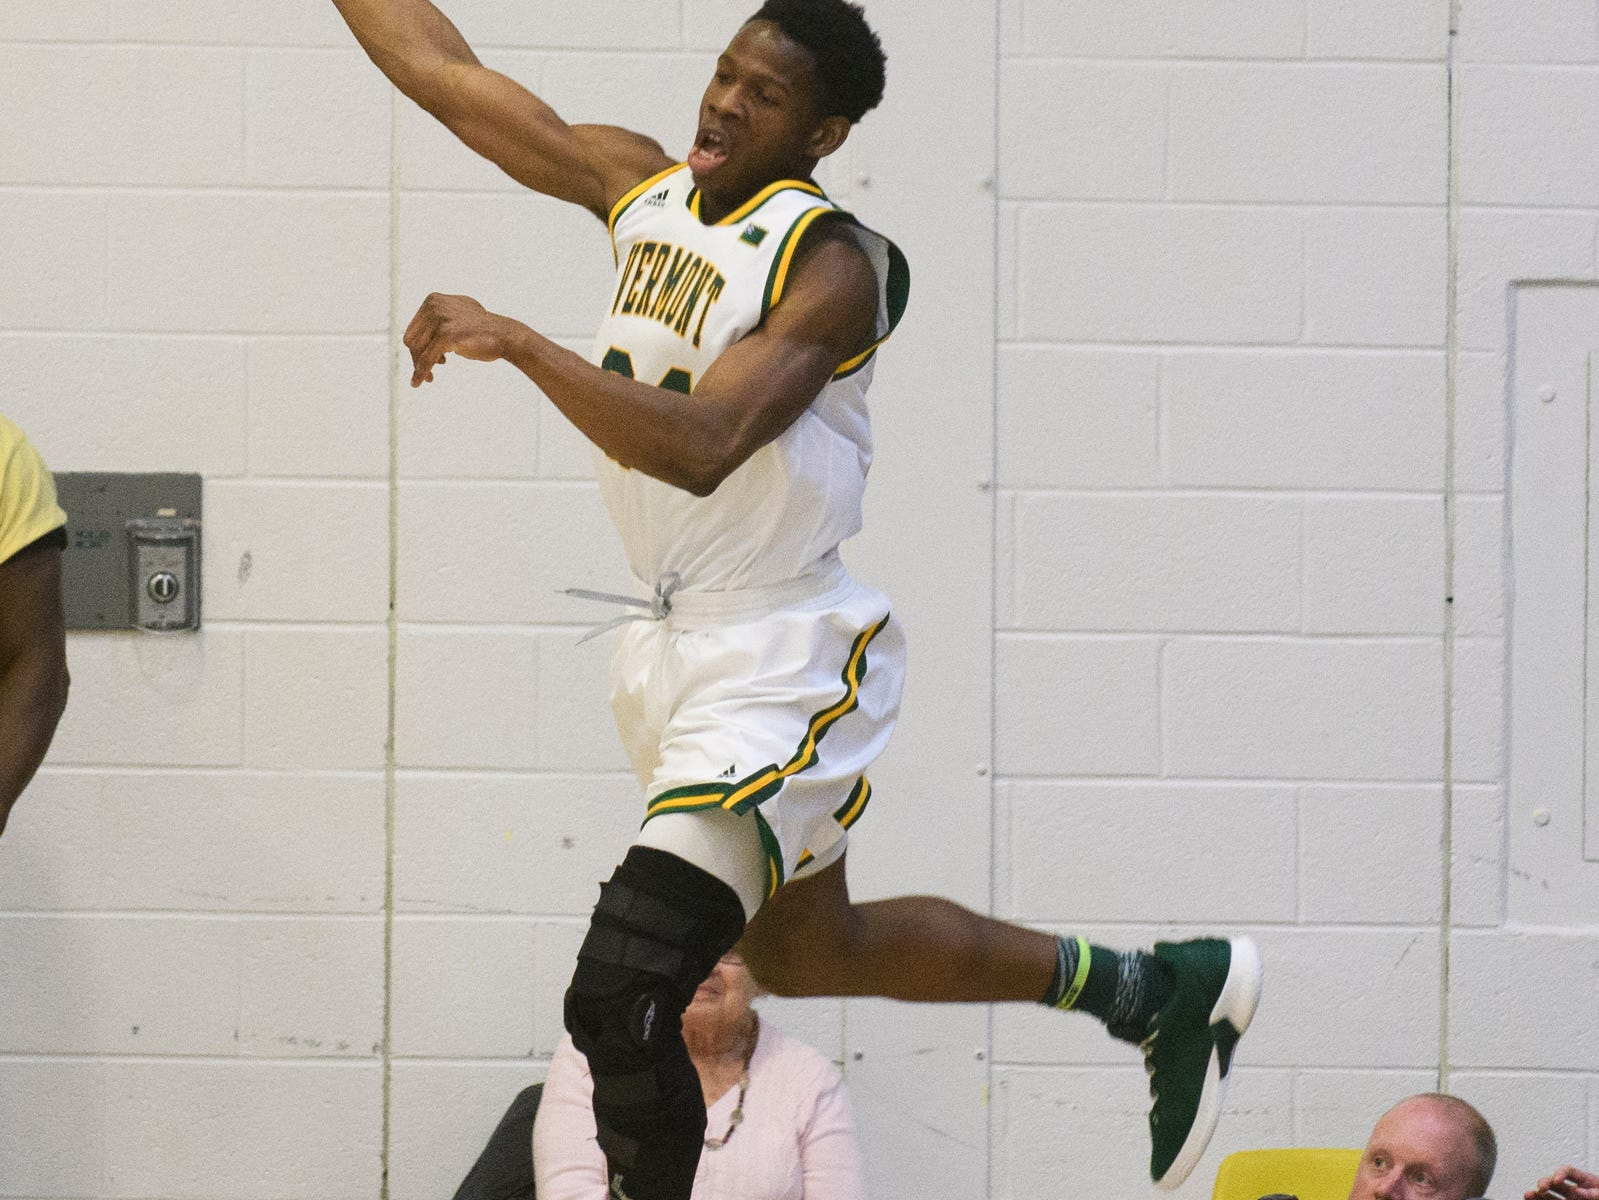 Vermont guard Ben Shungu (24) leaps to save the ball from going out of bounds during the America East semifinal game between the Binghamton Bearcats and the Vermont Catamounts at Patrick Gym on Tuesday March 12, 2019 in Burlington, Vermont.